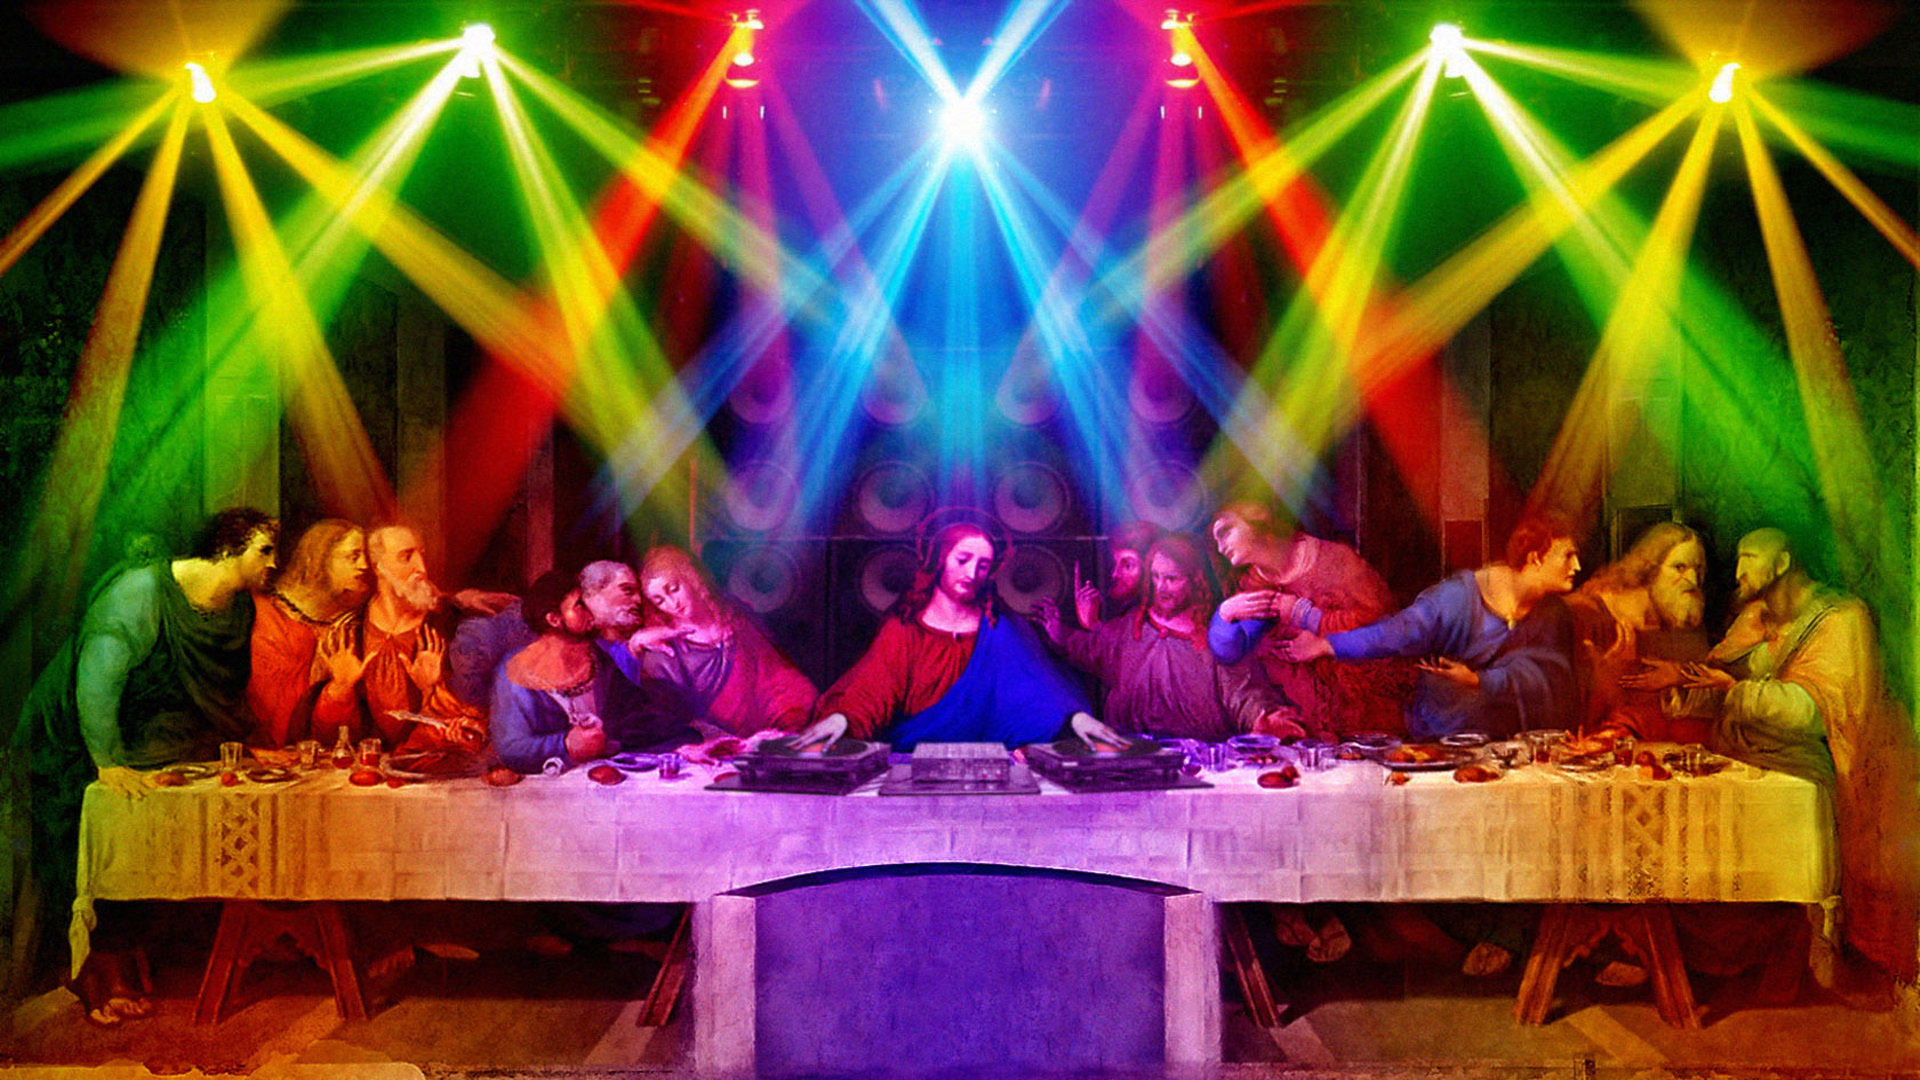 Last supper party